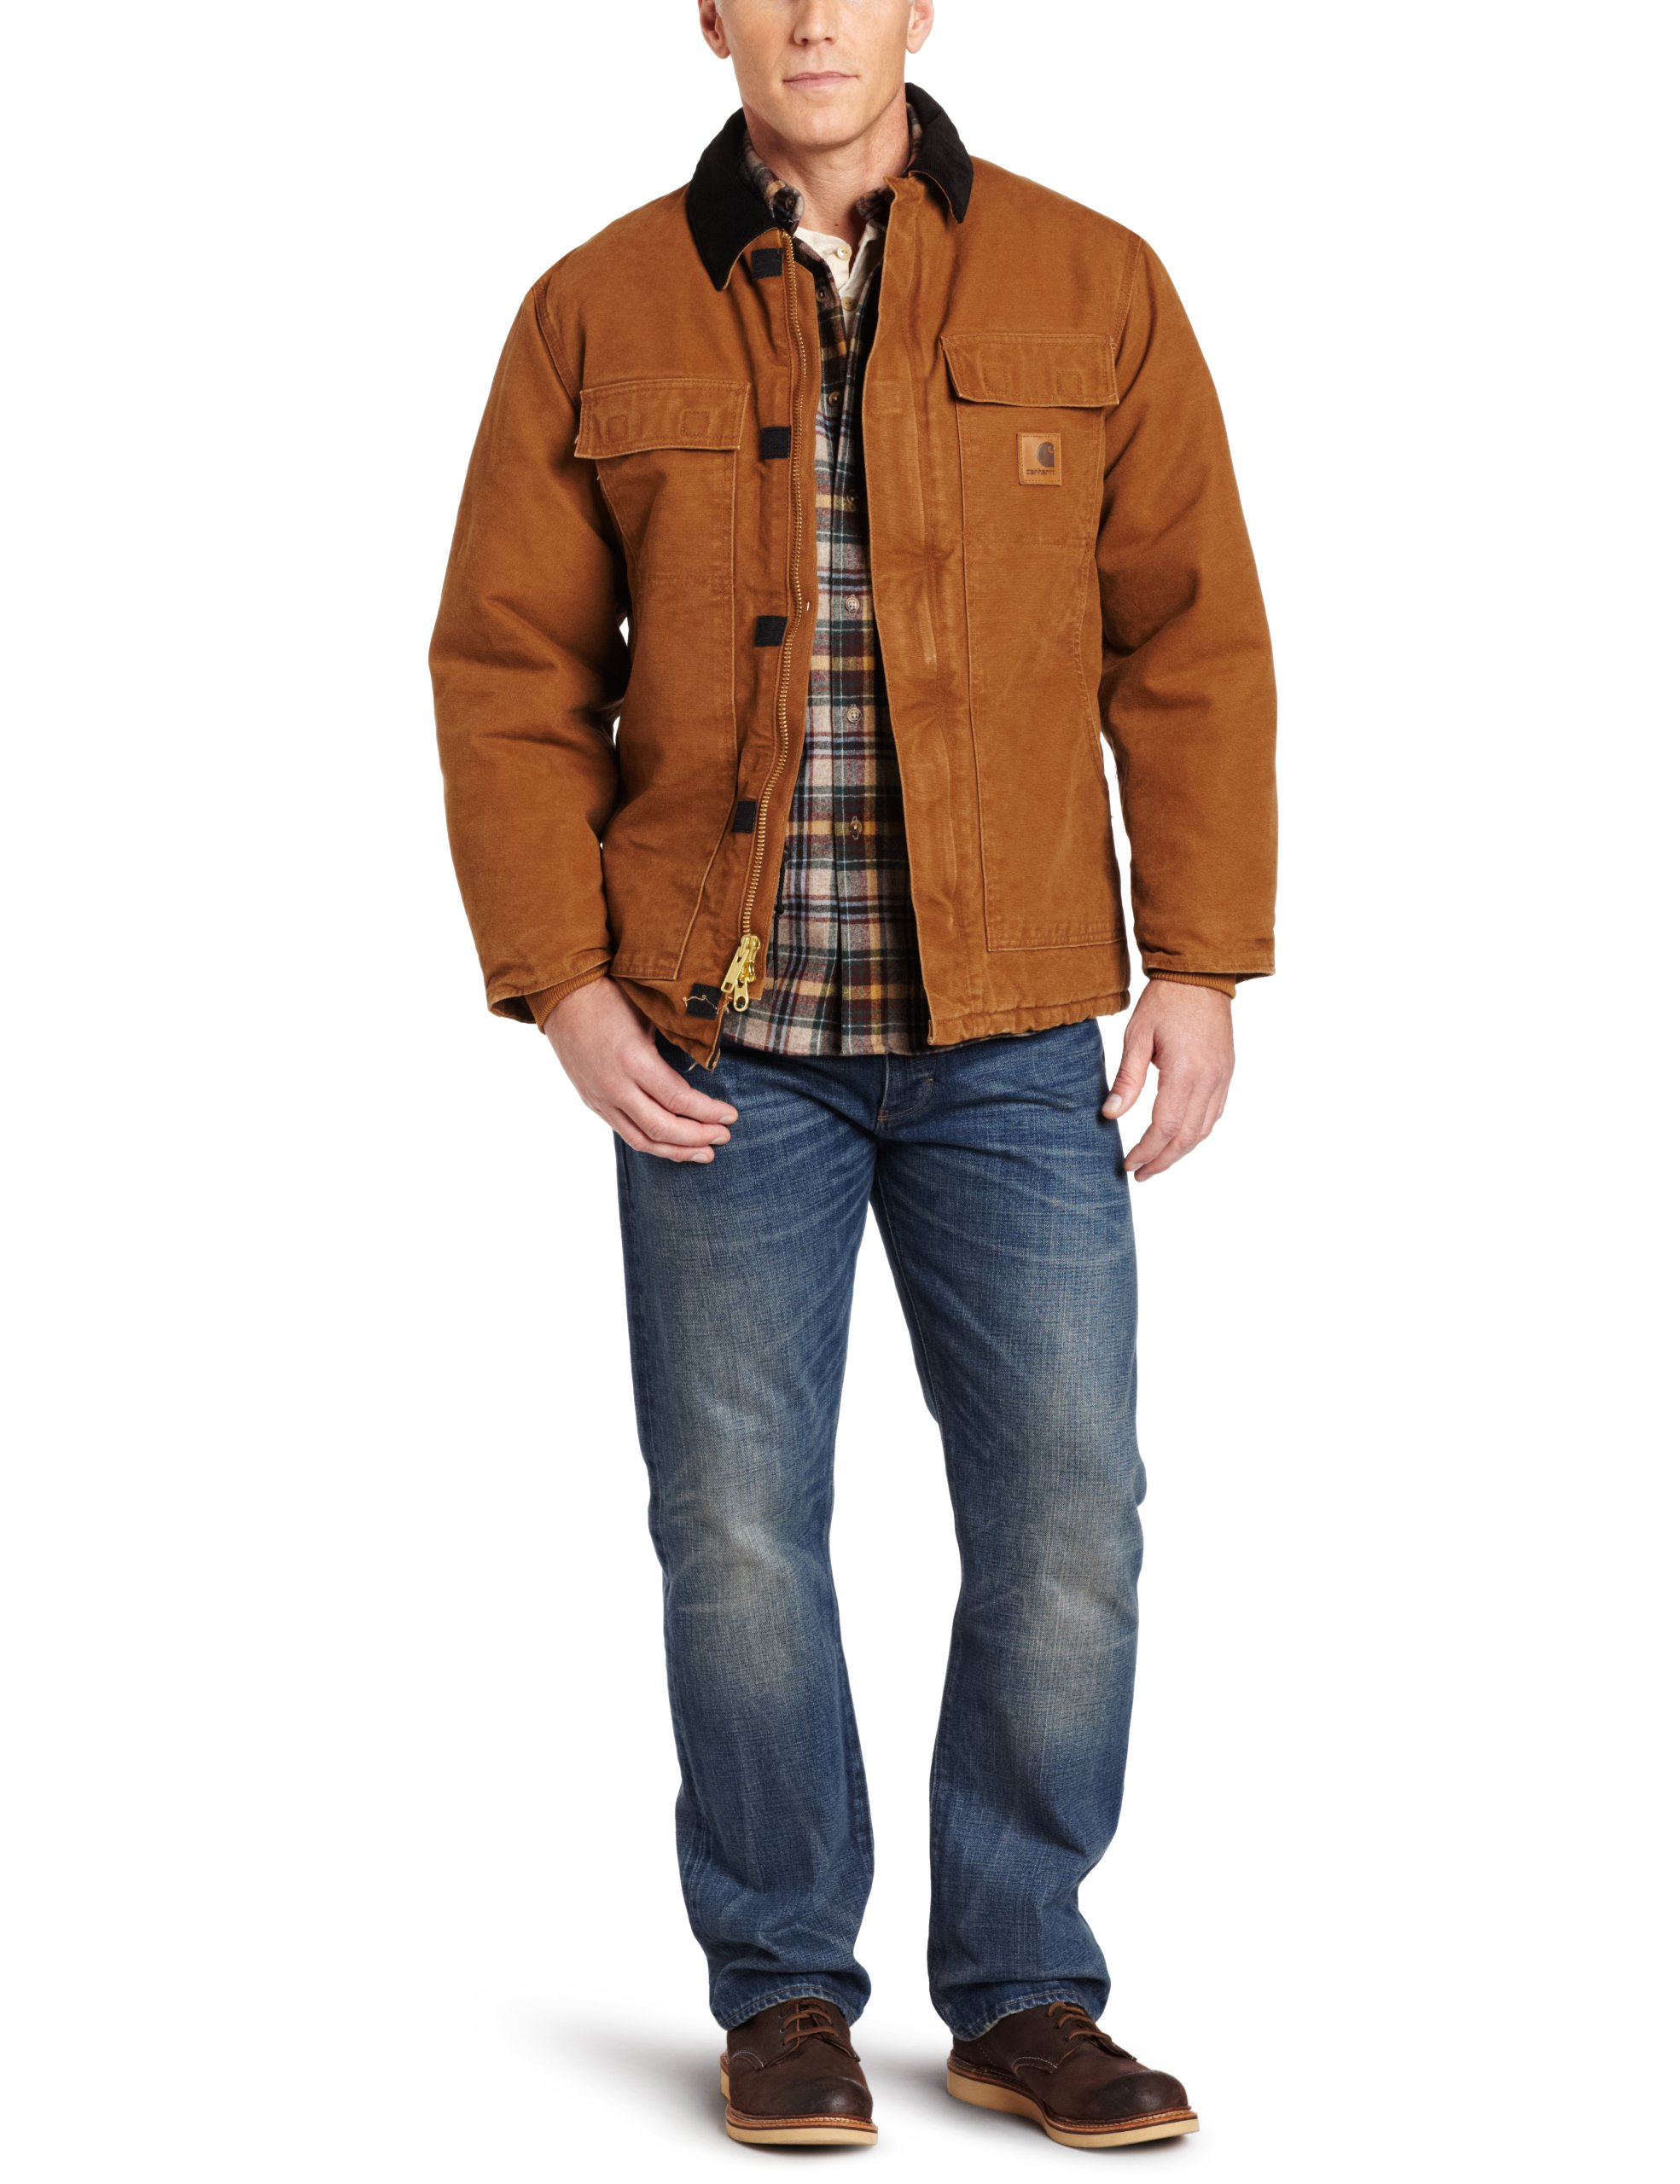 Carhartt Men's Arctic Quilt Lined Sandstone Traditional Coat C26,Carhartt Brown,Large by Carhartt